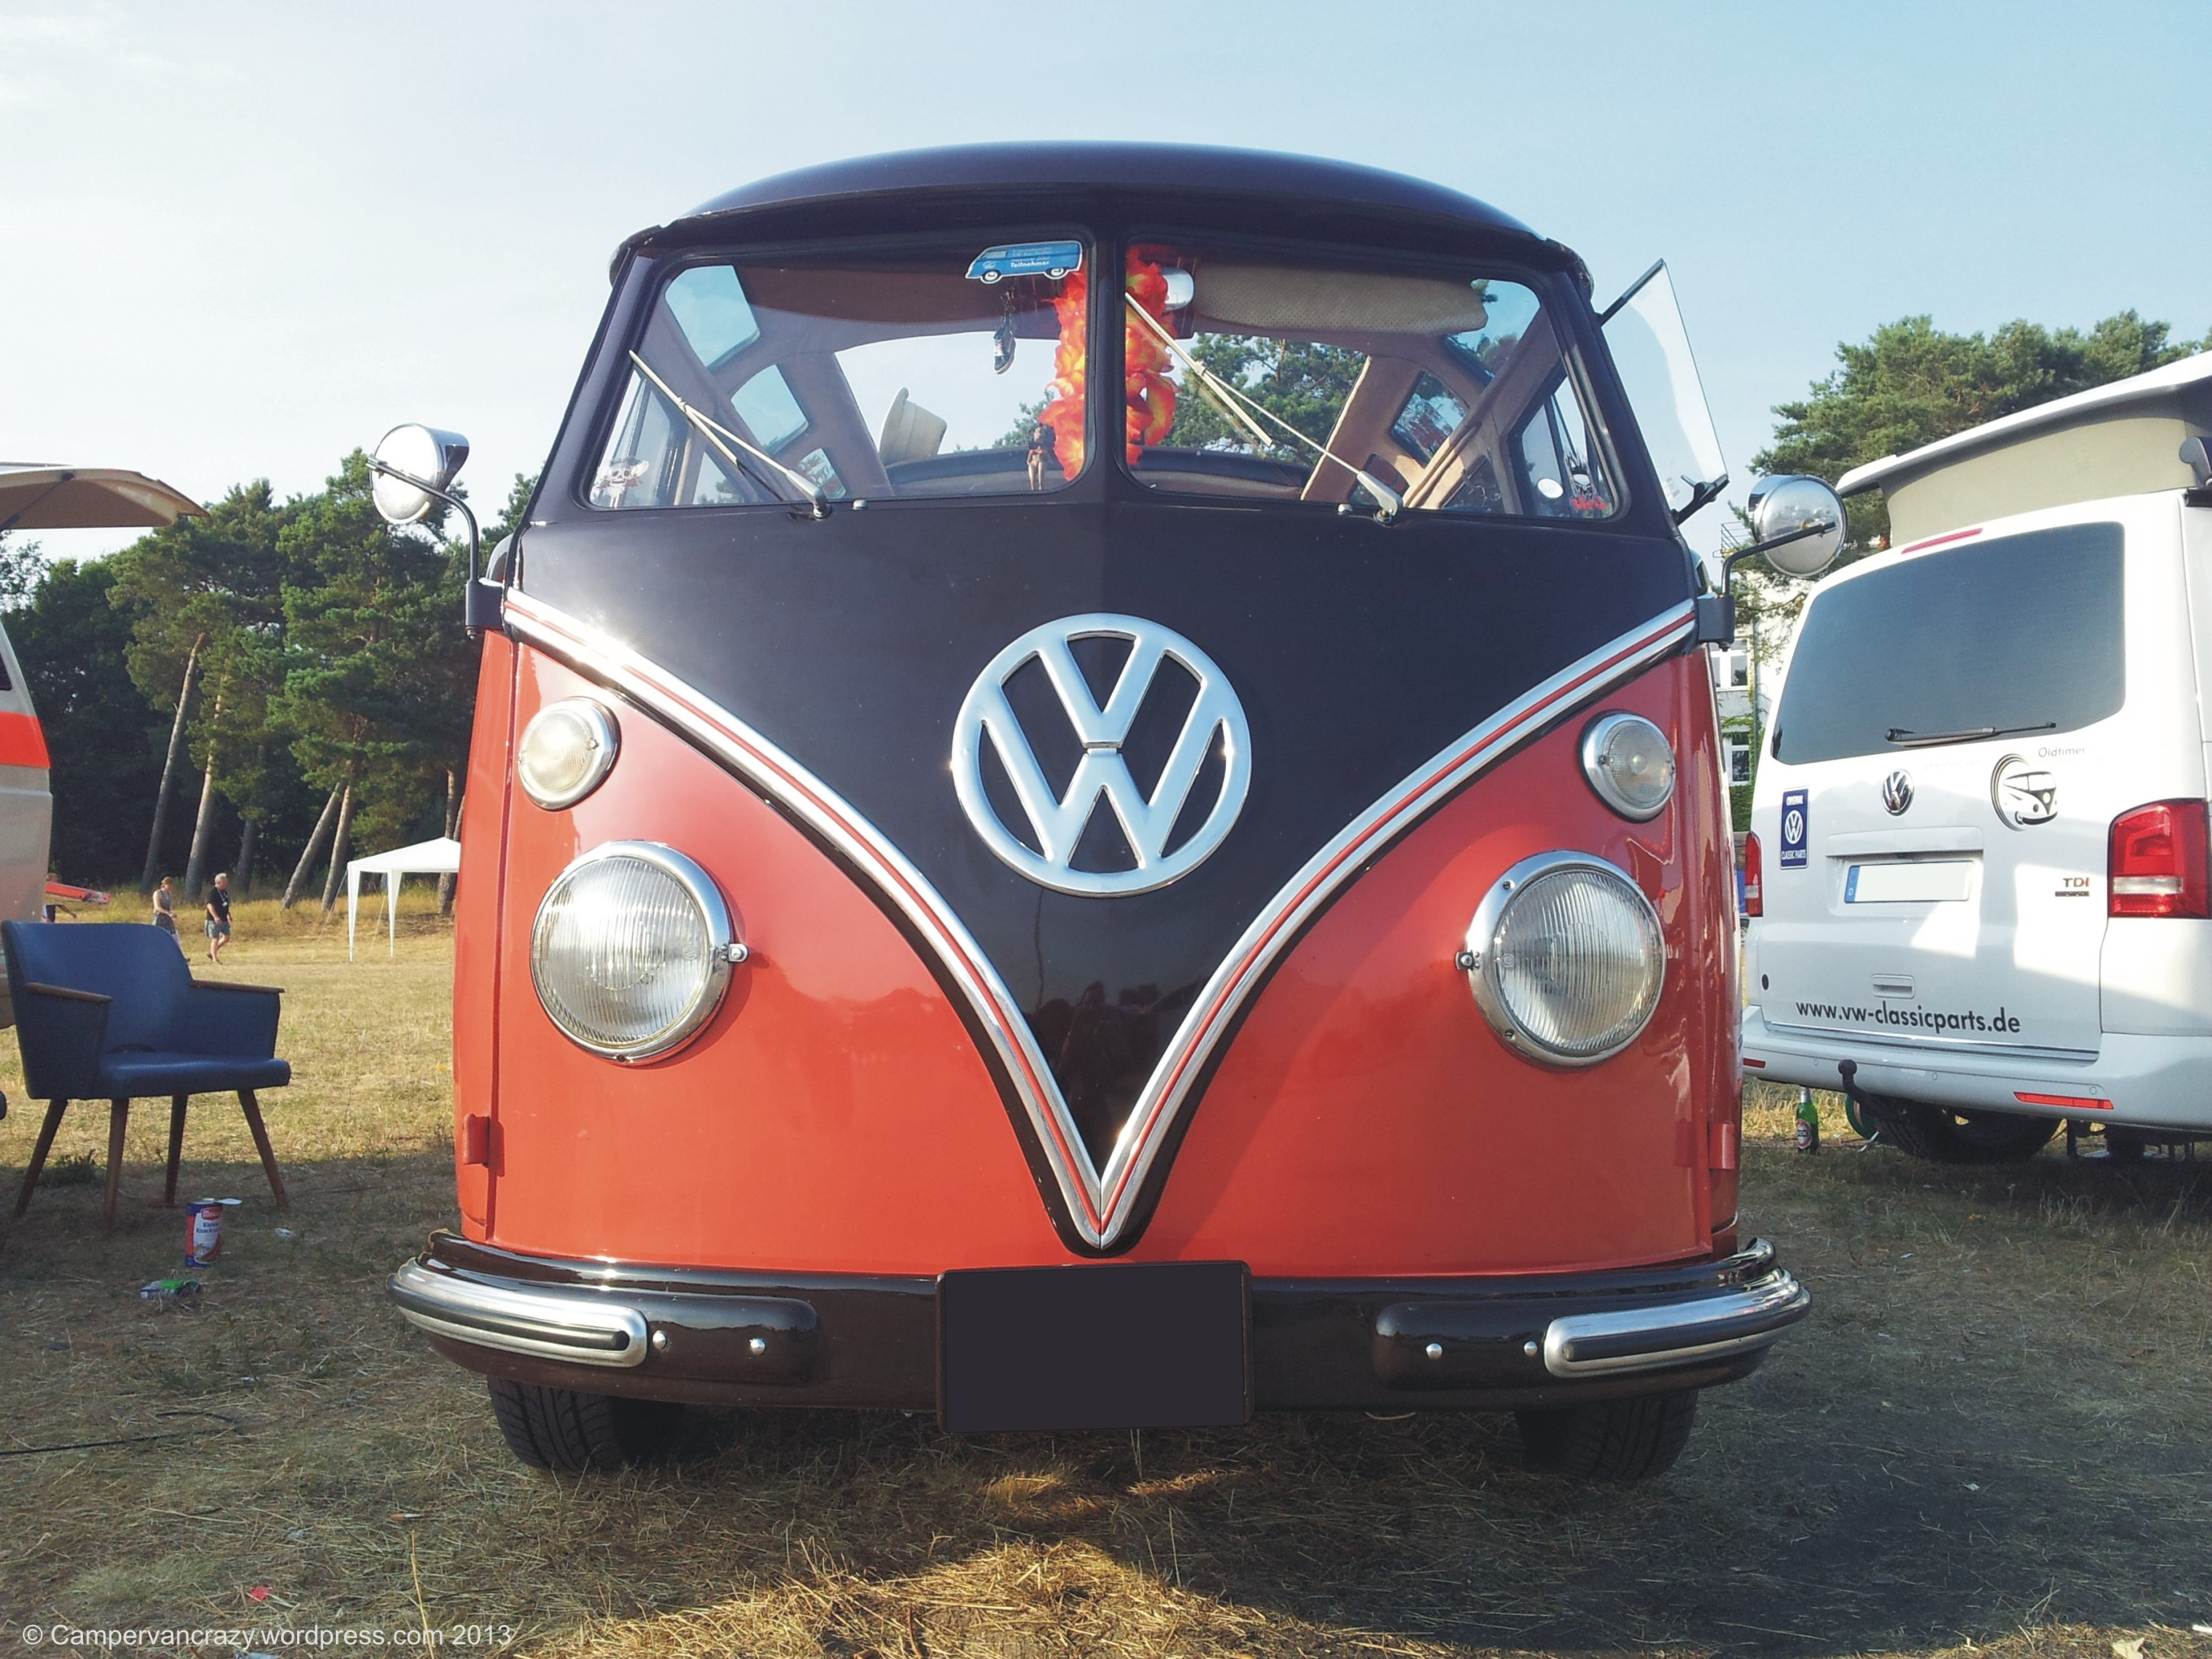 going note a likely vanagon vw buyers hookups work auction not all re the bus potential tacoma sure propane make and wa in volkswagen below to go smallcar they for camper westfalia kitchen mark